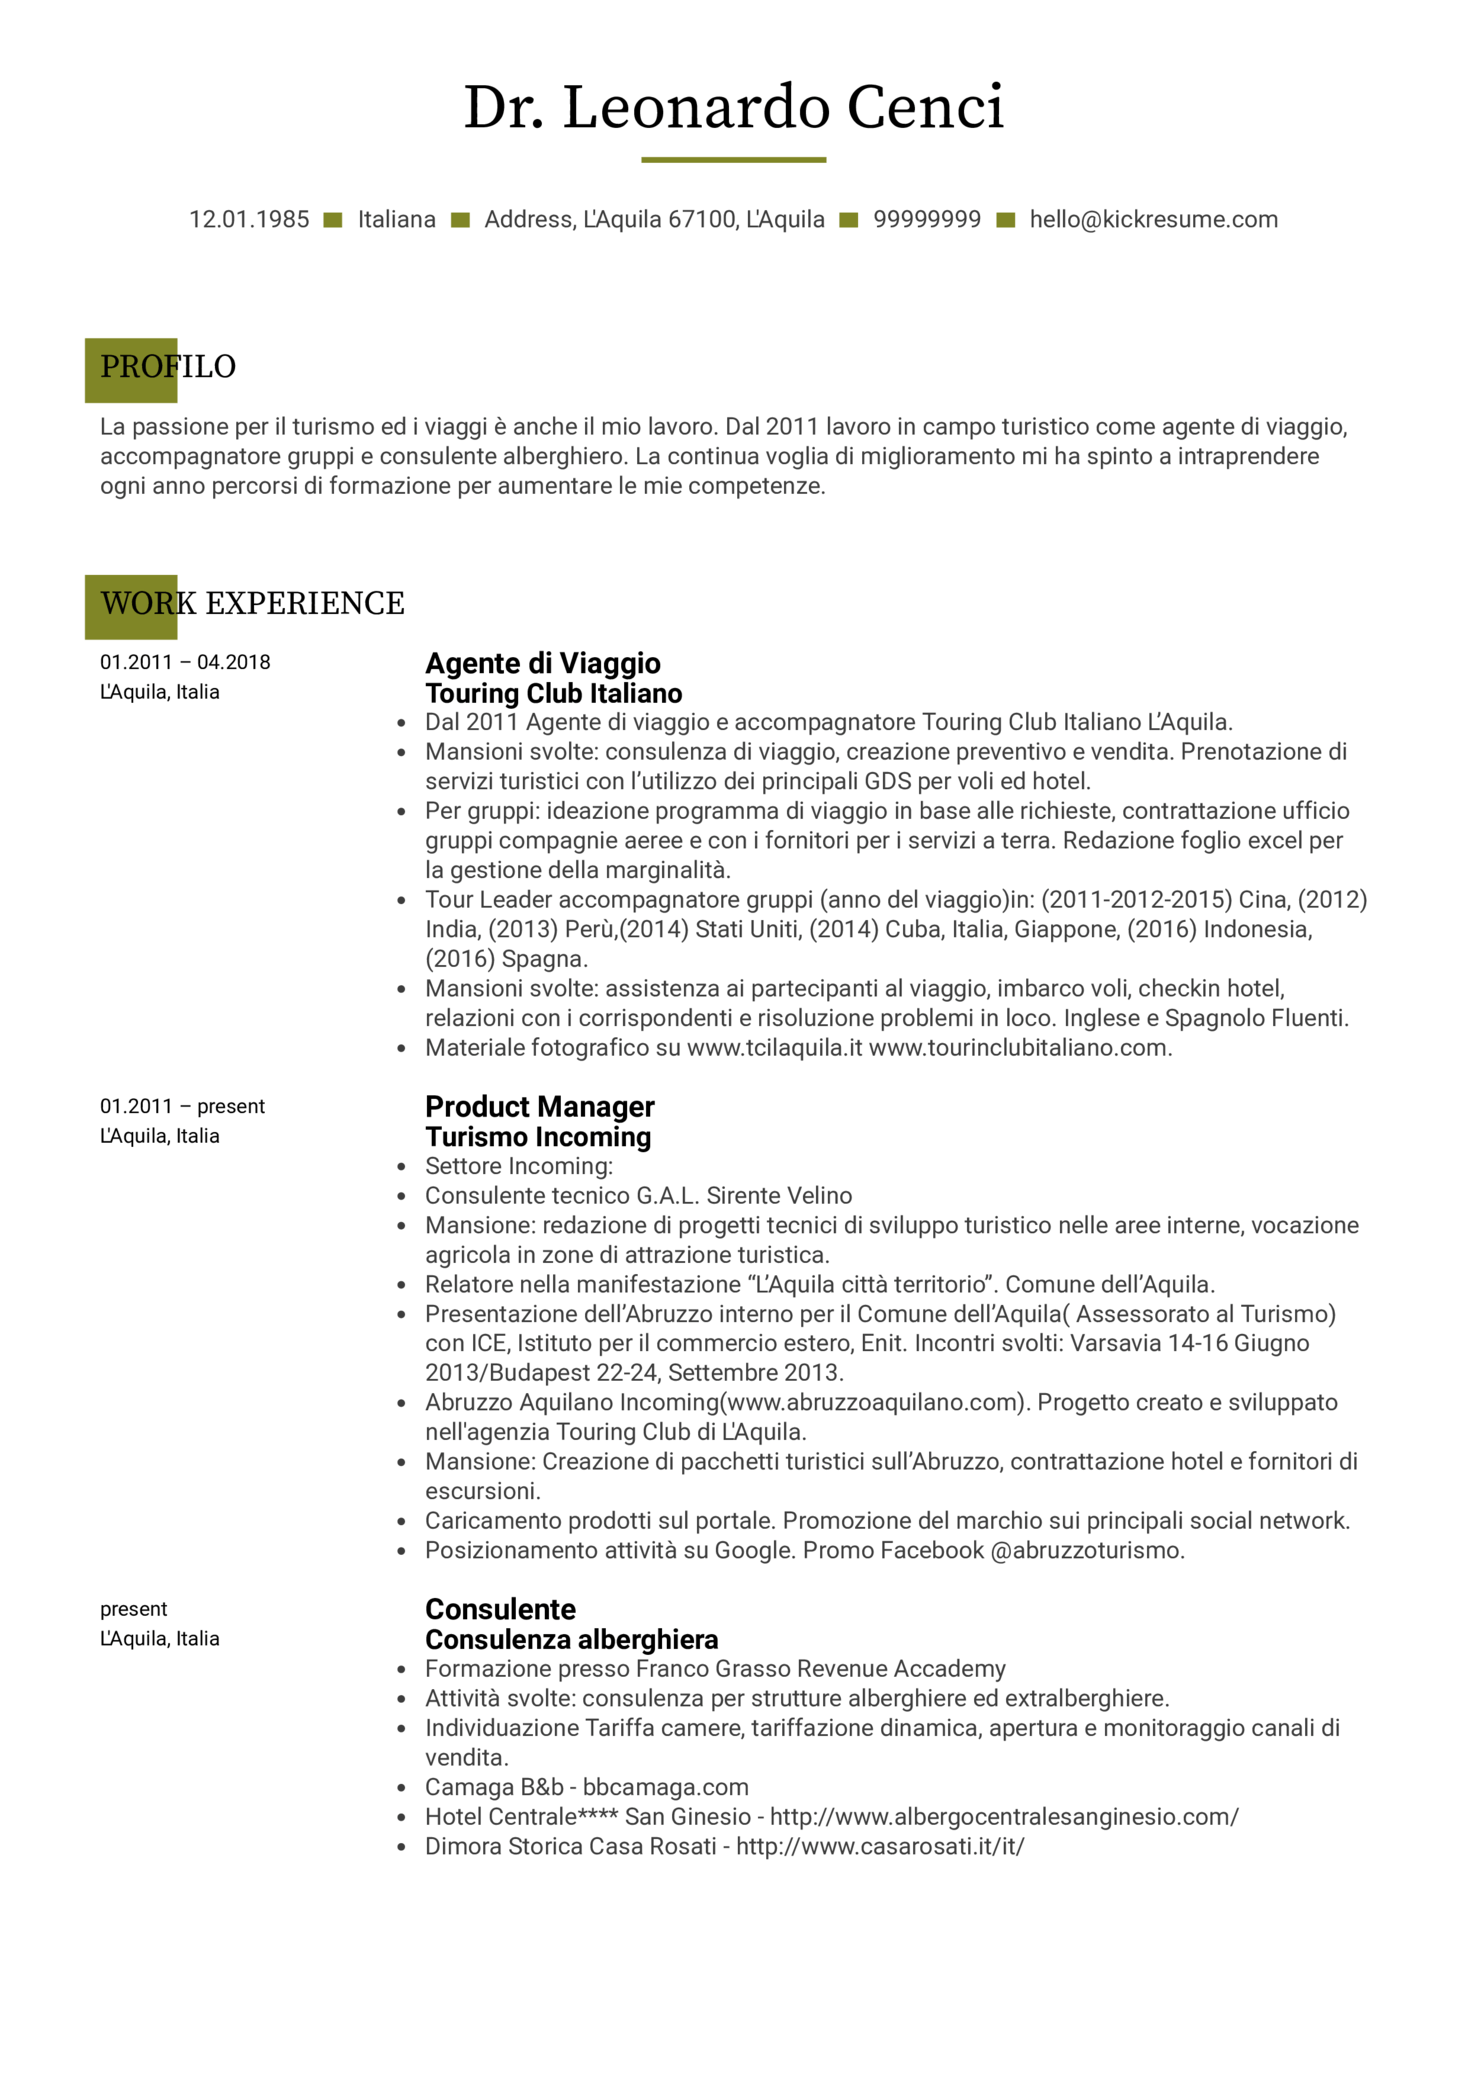 Sales Specialist Resume Example [IT]